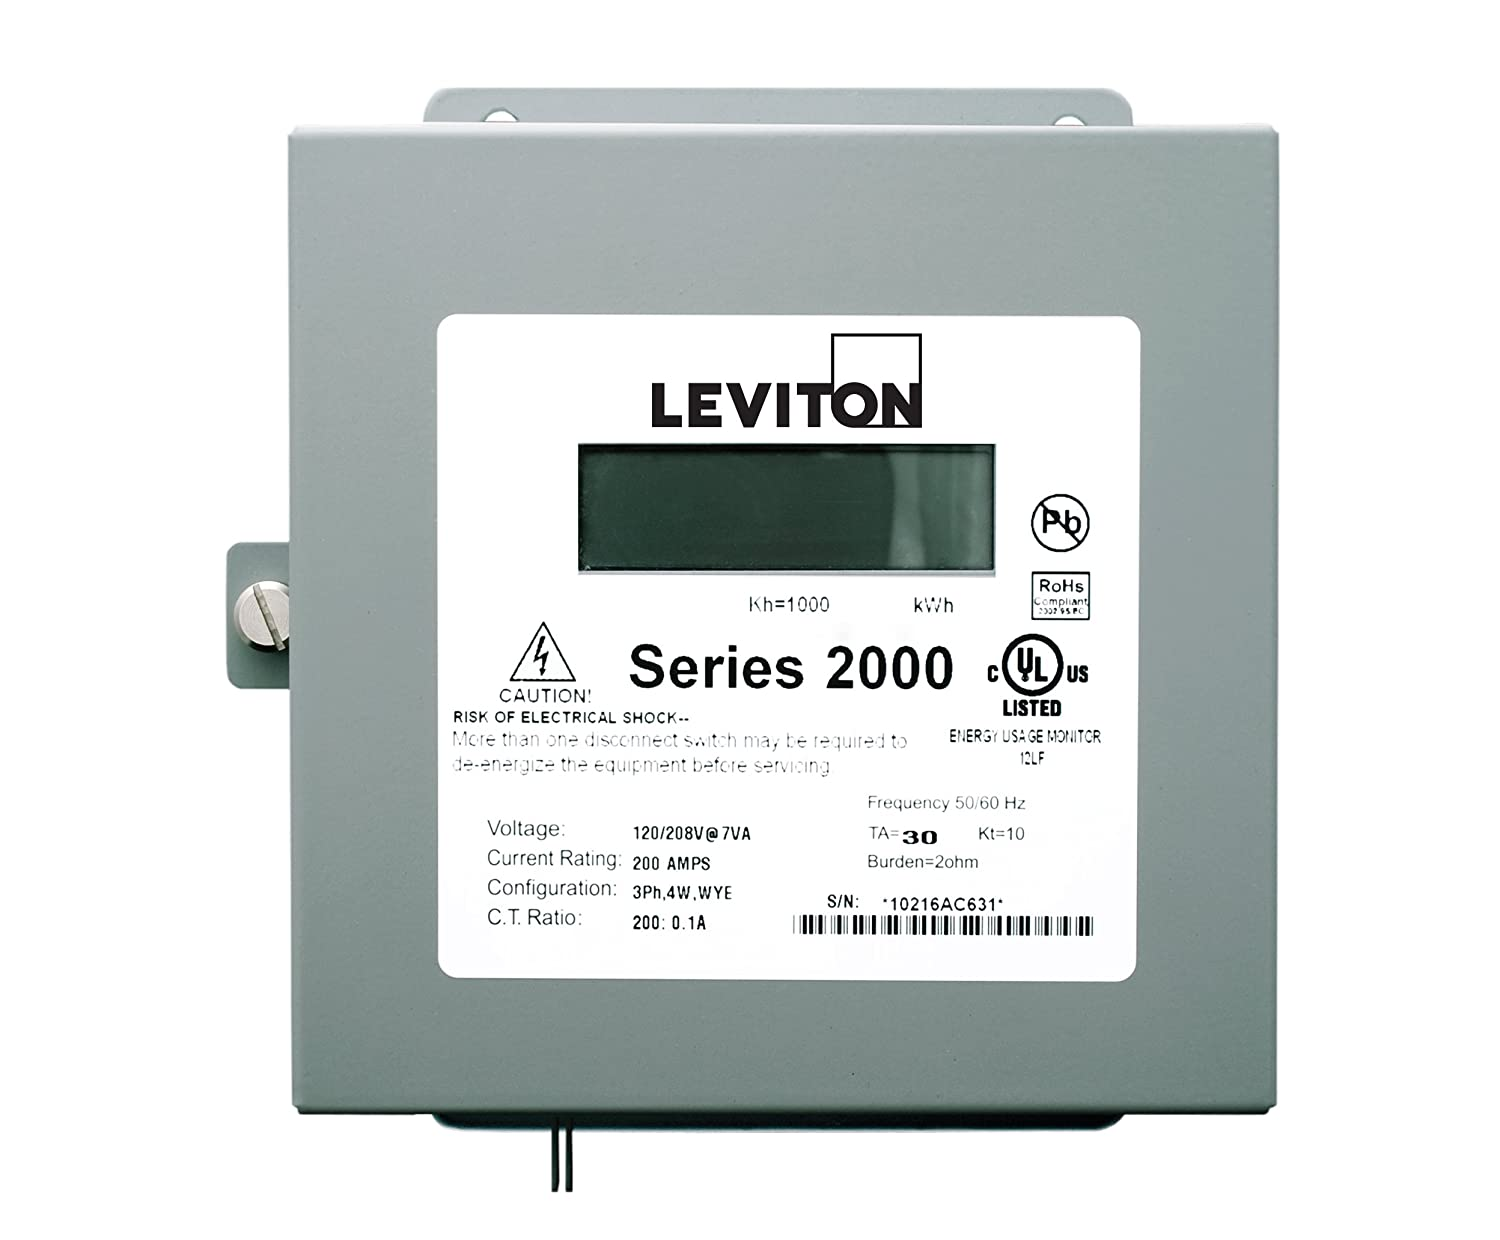 Leviton 2N208-21 Sub-Meter Series 2000 Three Element Meter 200:0.1A ratio,  Max 200A Indoor Surface Mount Enclosure - Electrical Outlet Boxes -  Amazon.com